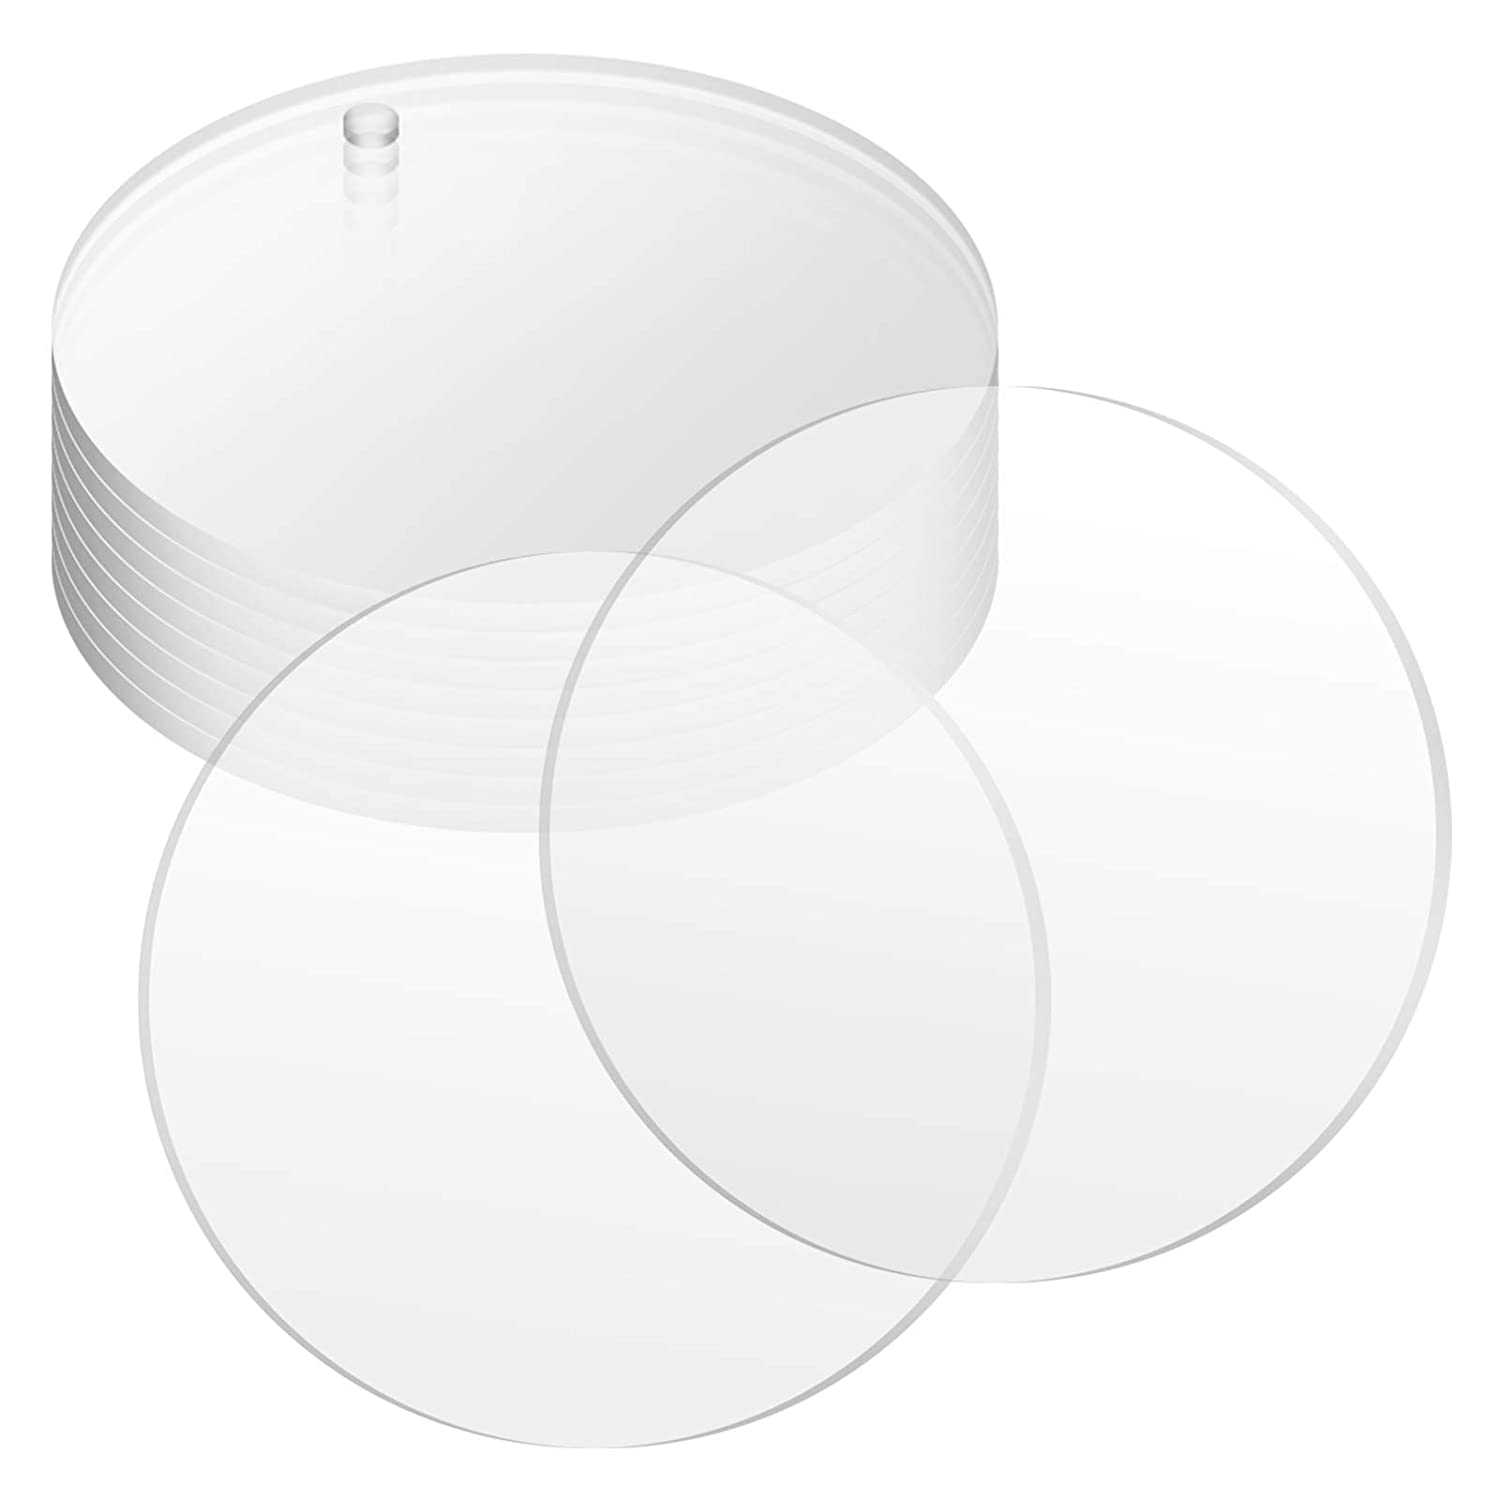 2.5 Diameter Crystal Clear Cast Sheet Pack of 25 Table Signs Cricut Cutting Picture Frames Gartful Round Acrylic Plexiglass Sheet 1//8 Thick Transparent Panel Board for Crafting Projects